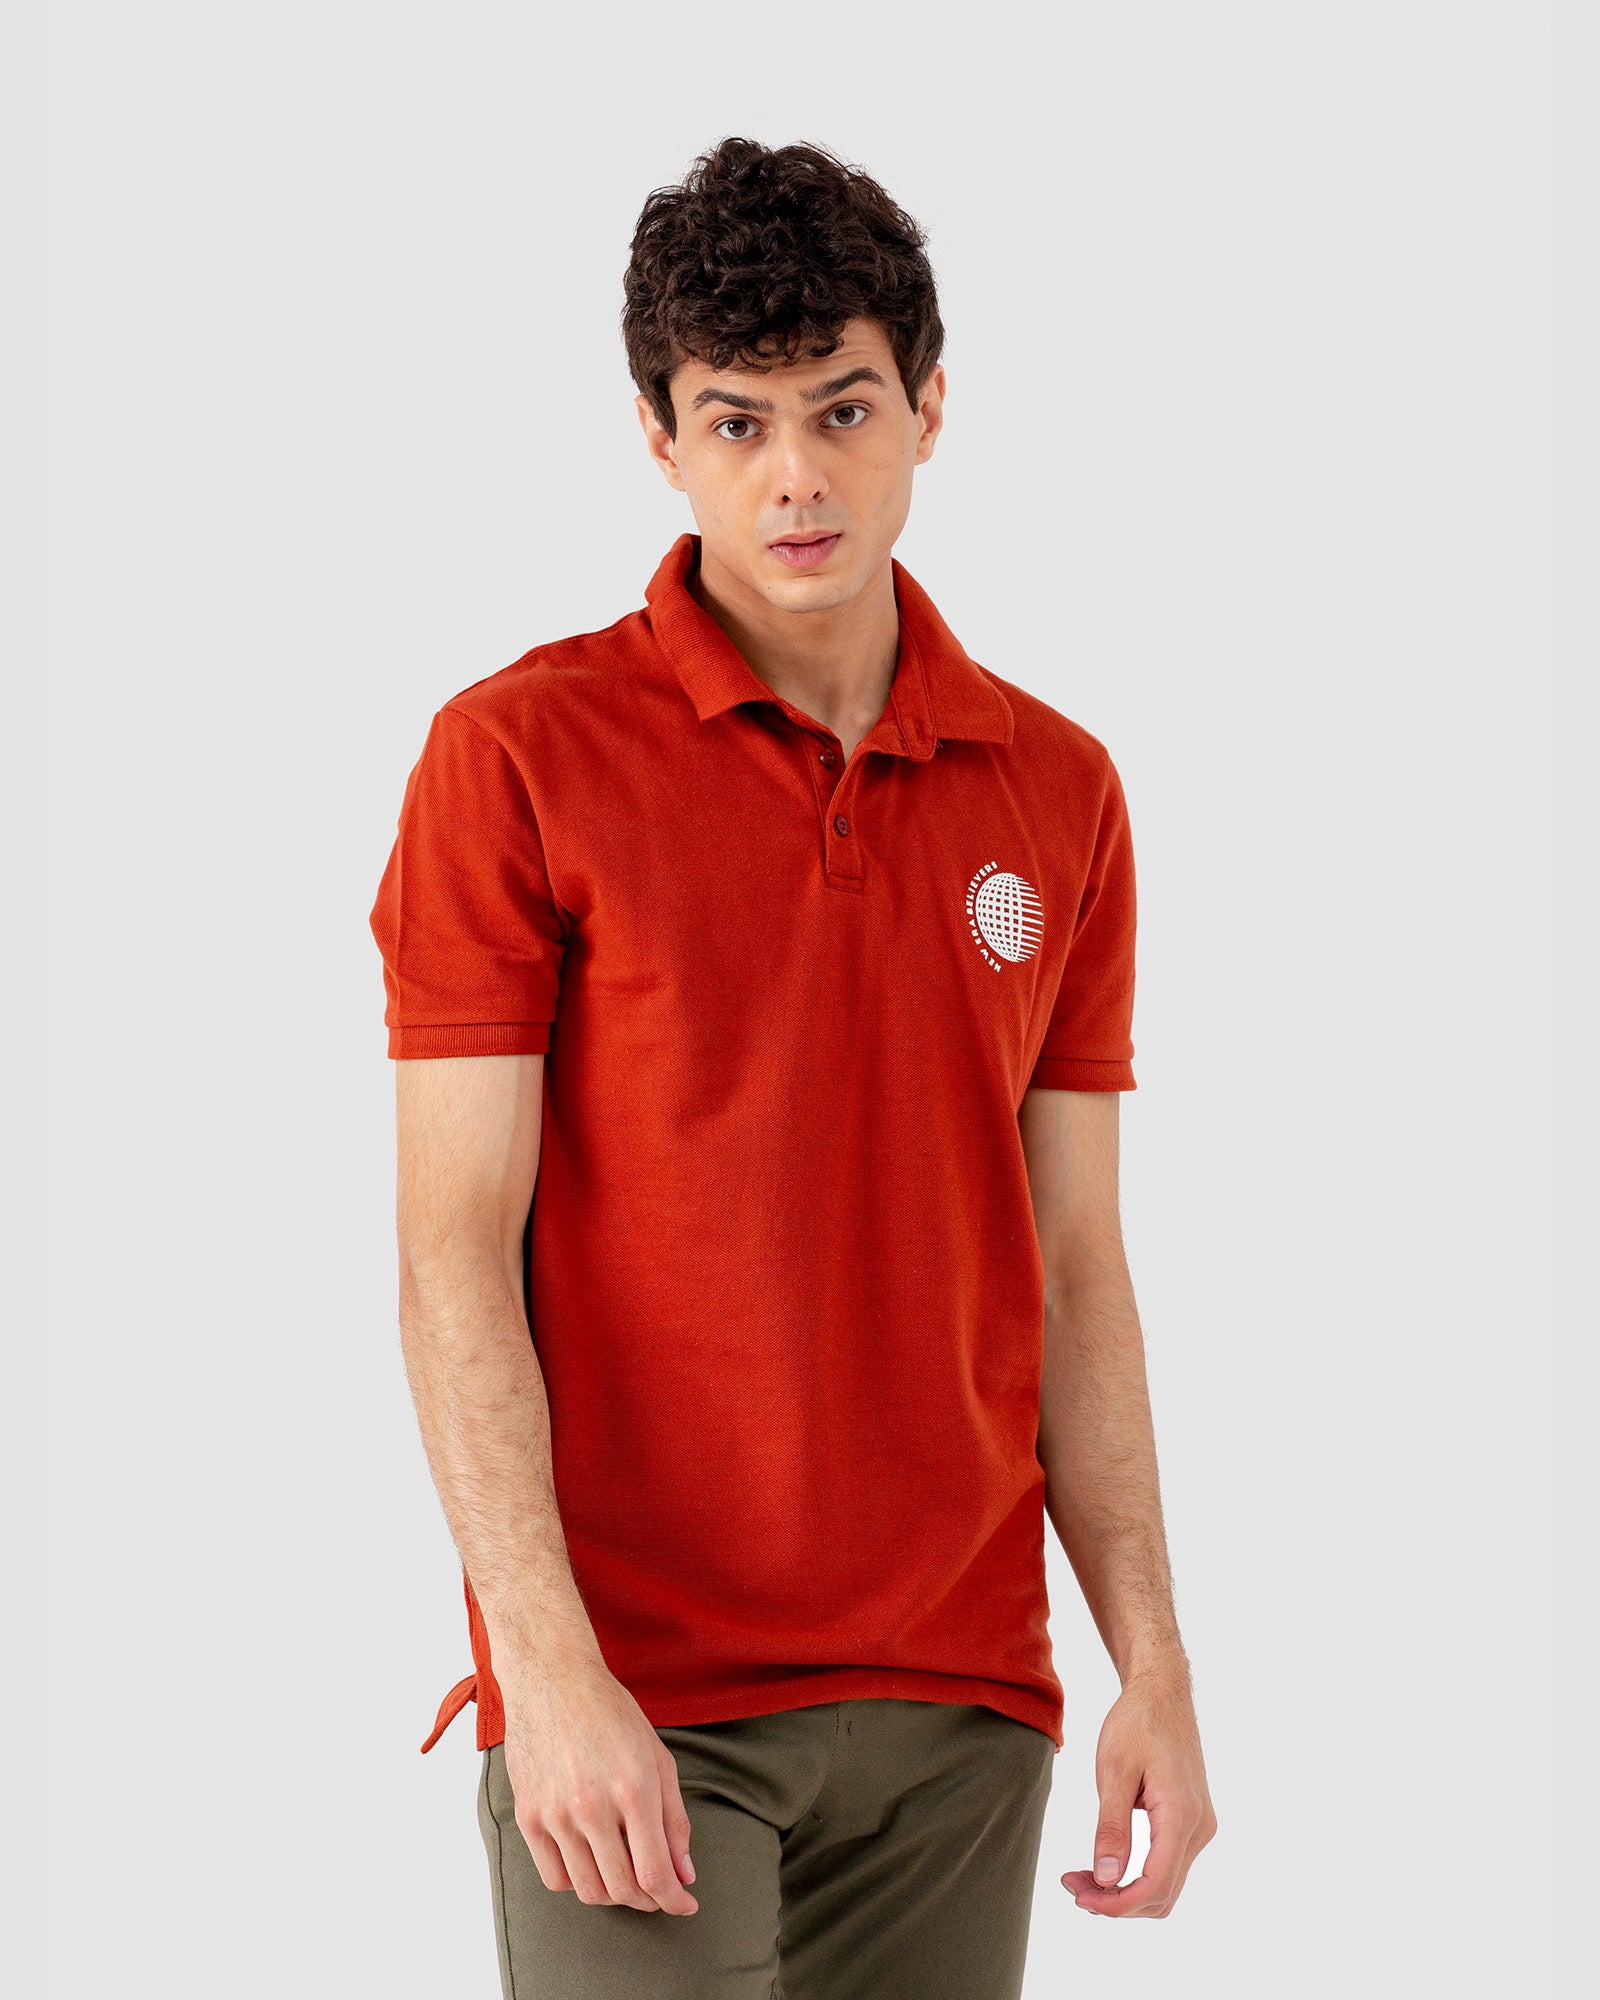 New Era Believers Polo Tee